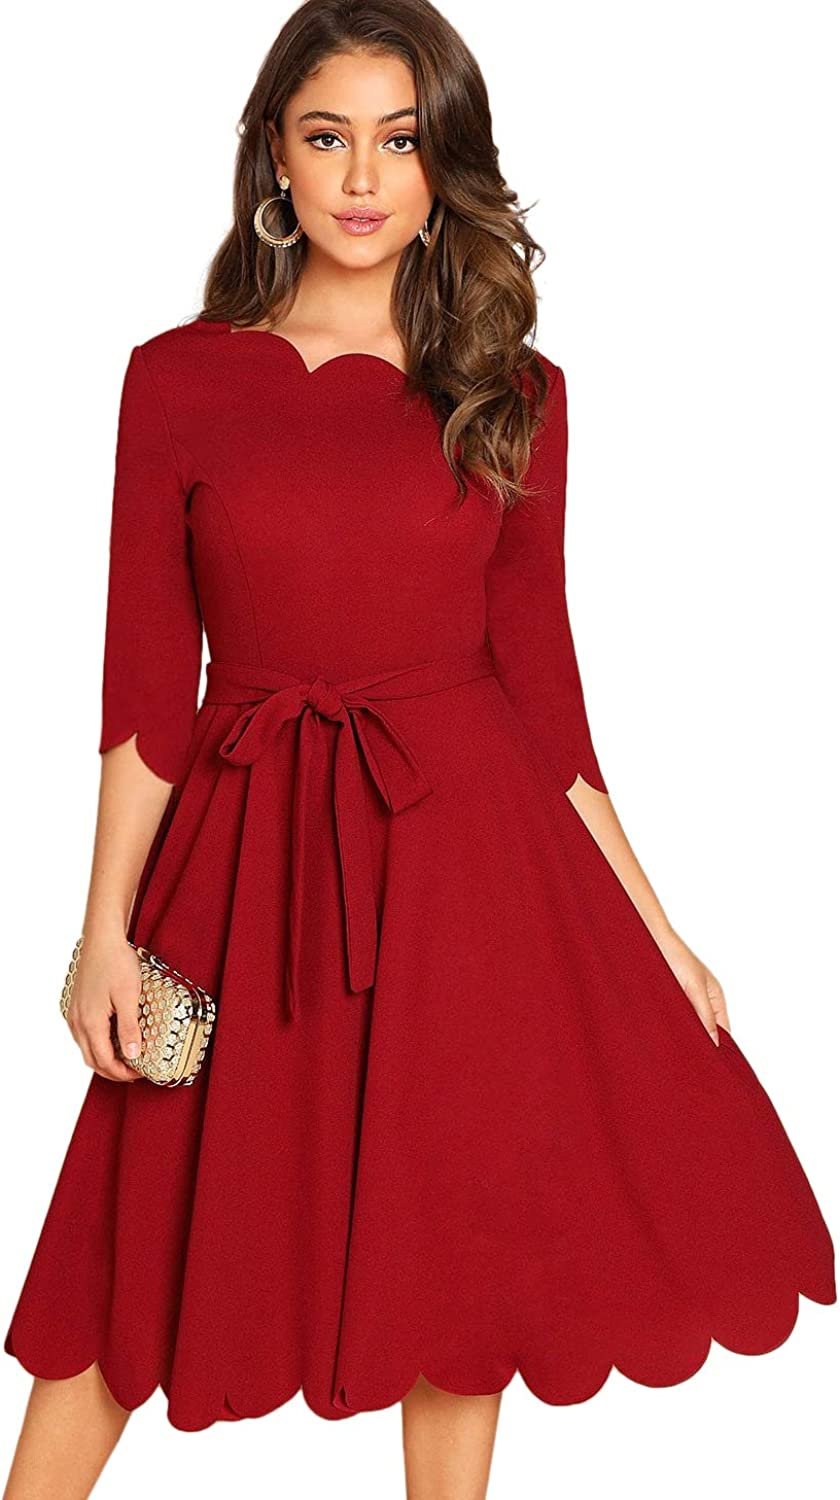 Milumia Women's 3 4 Sleeve Belted Knee Length Fit & Flare Scallop Dress